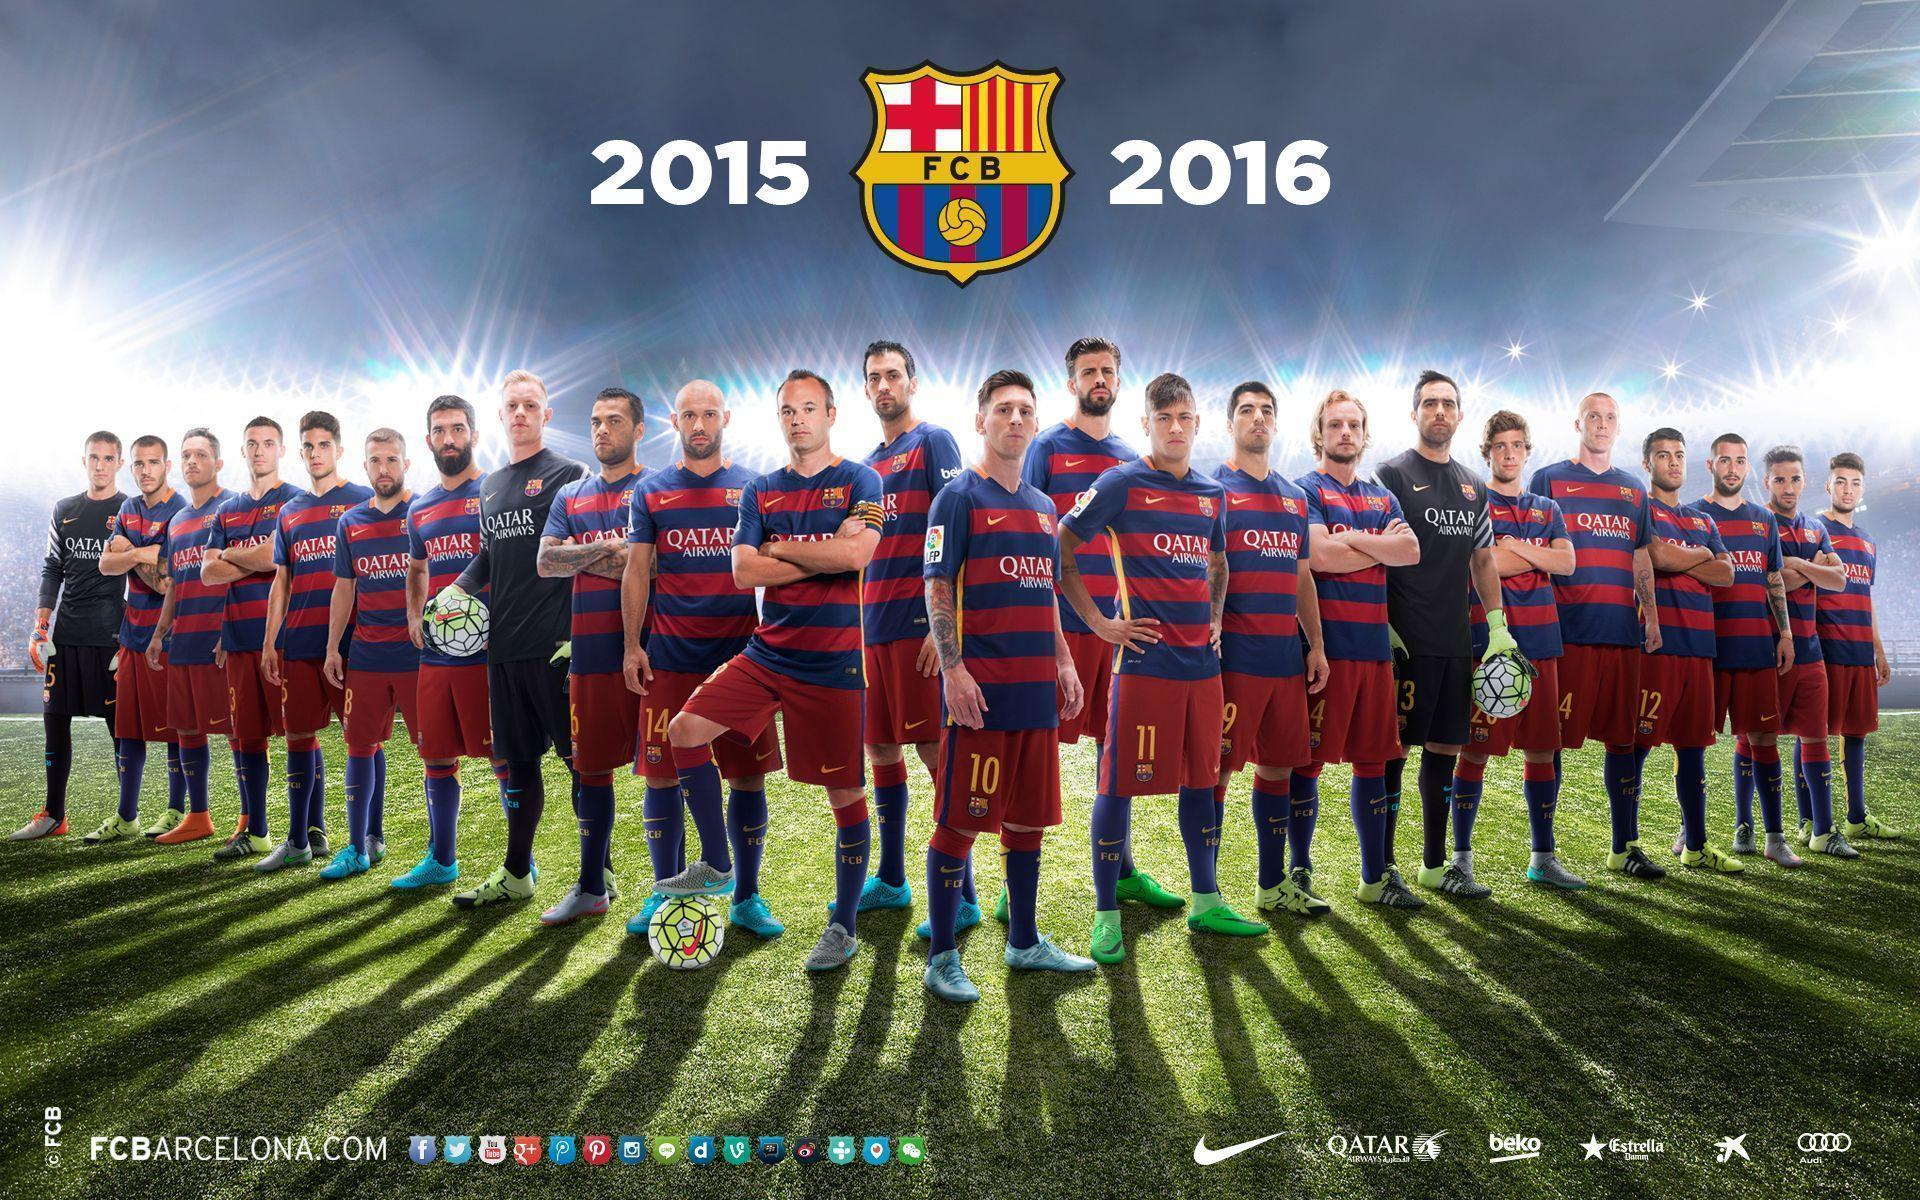 FC Barcelona Wallpapers 2016 | PNG